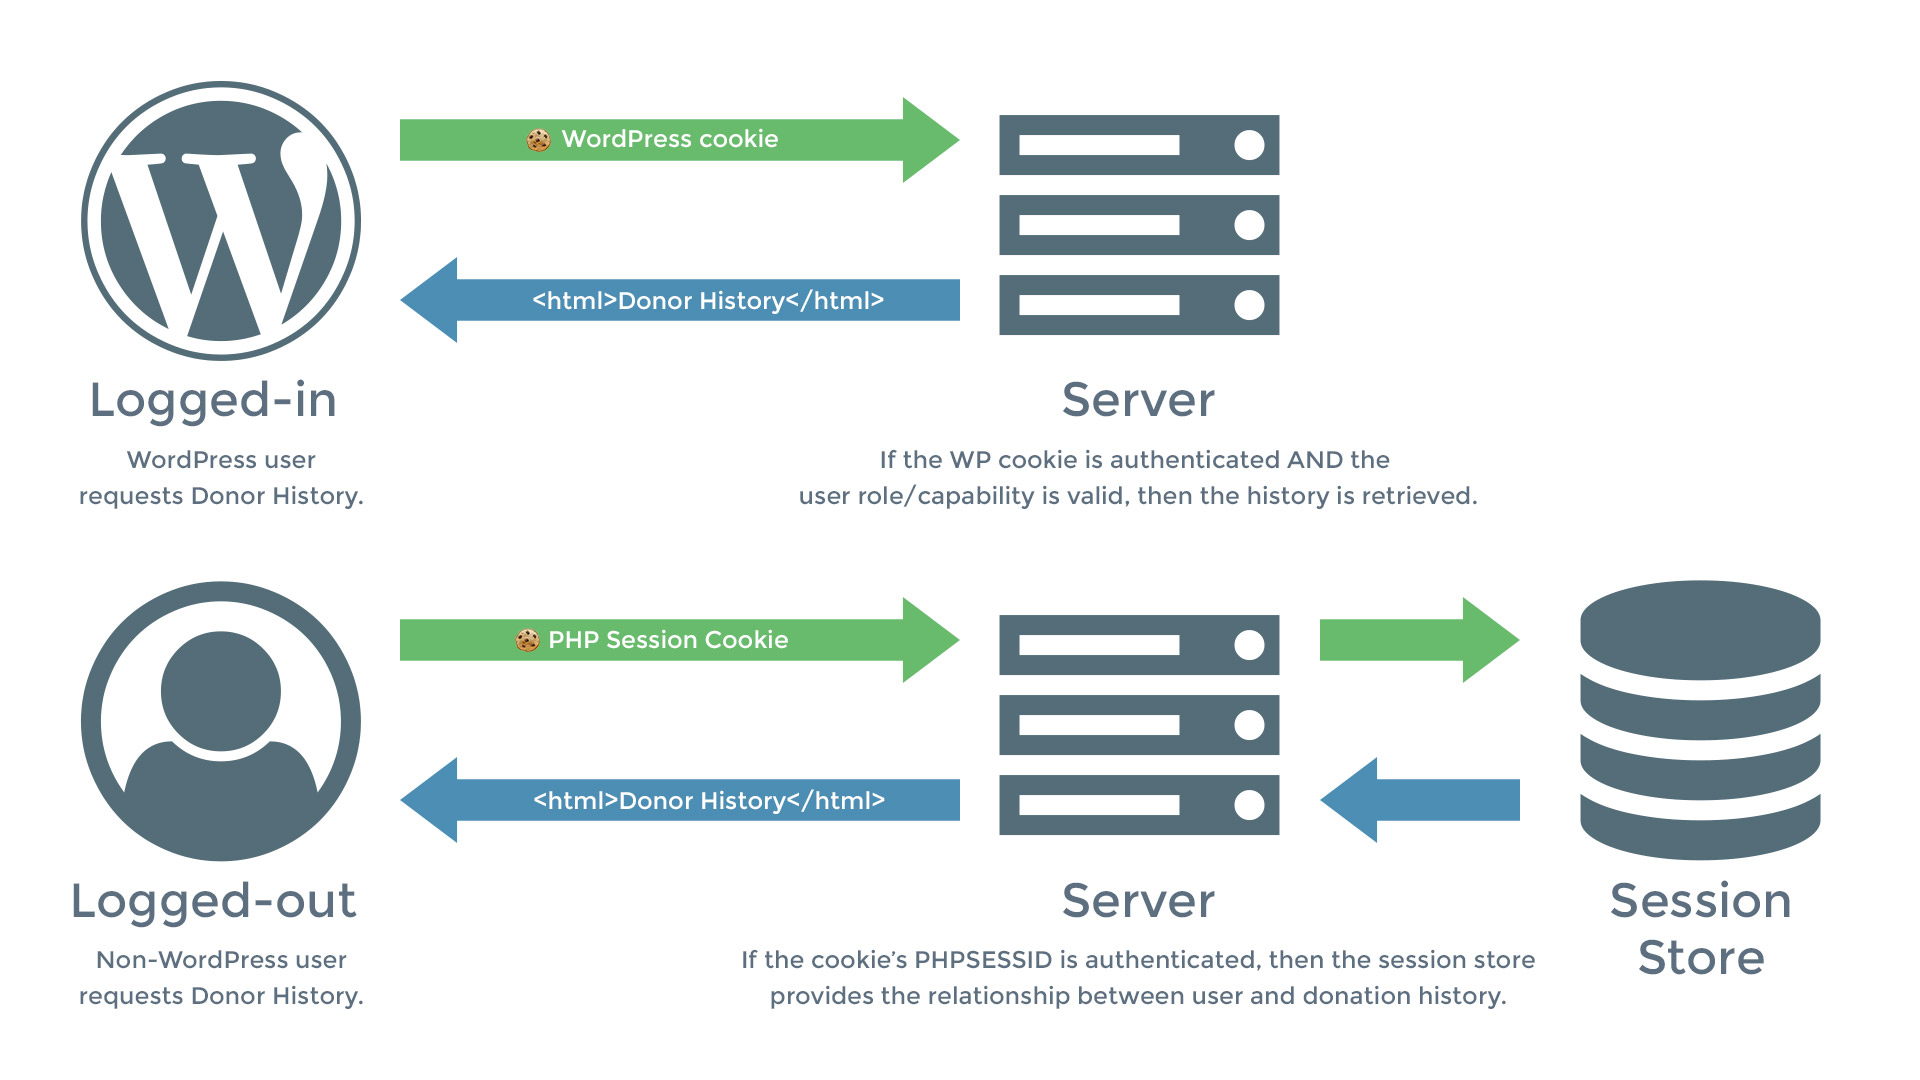 graphic showing the WP User on the Left, the WP Database/server in the middle, and session store on the right. If the user is logged in, there's no need for the session store. if the user is not, the session handles whether or not the user can access the information.